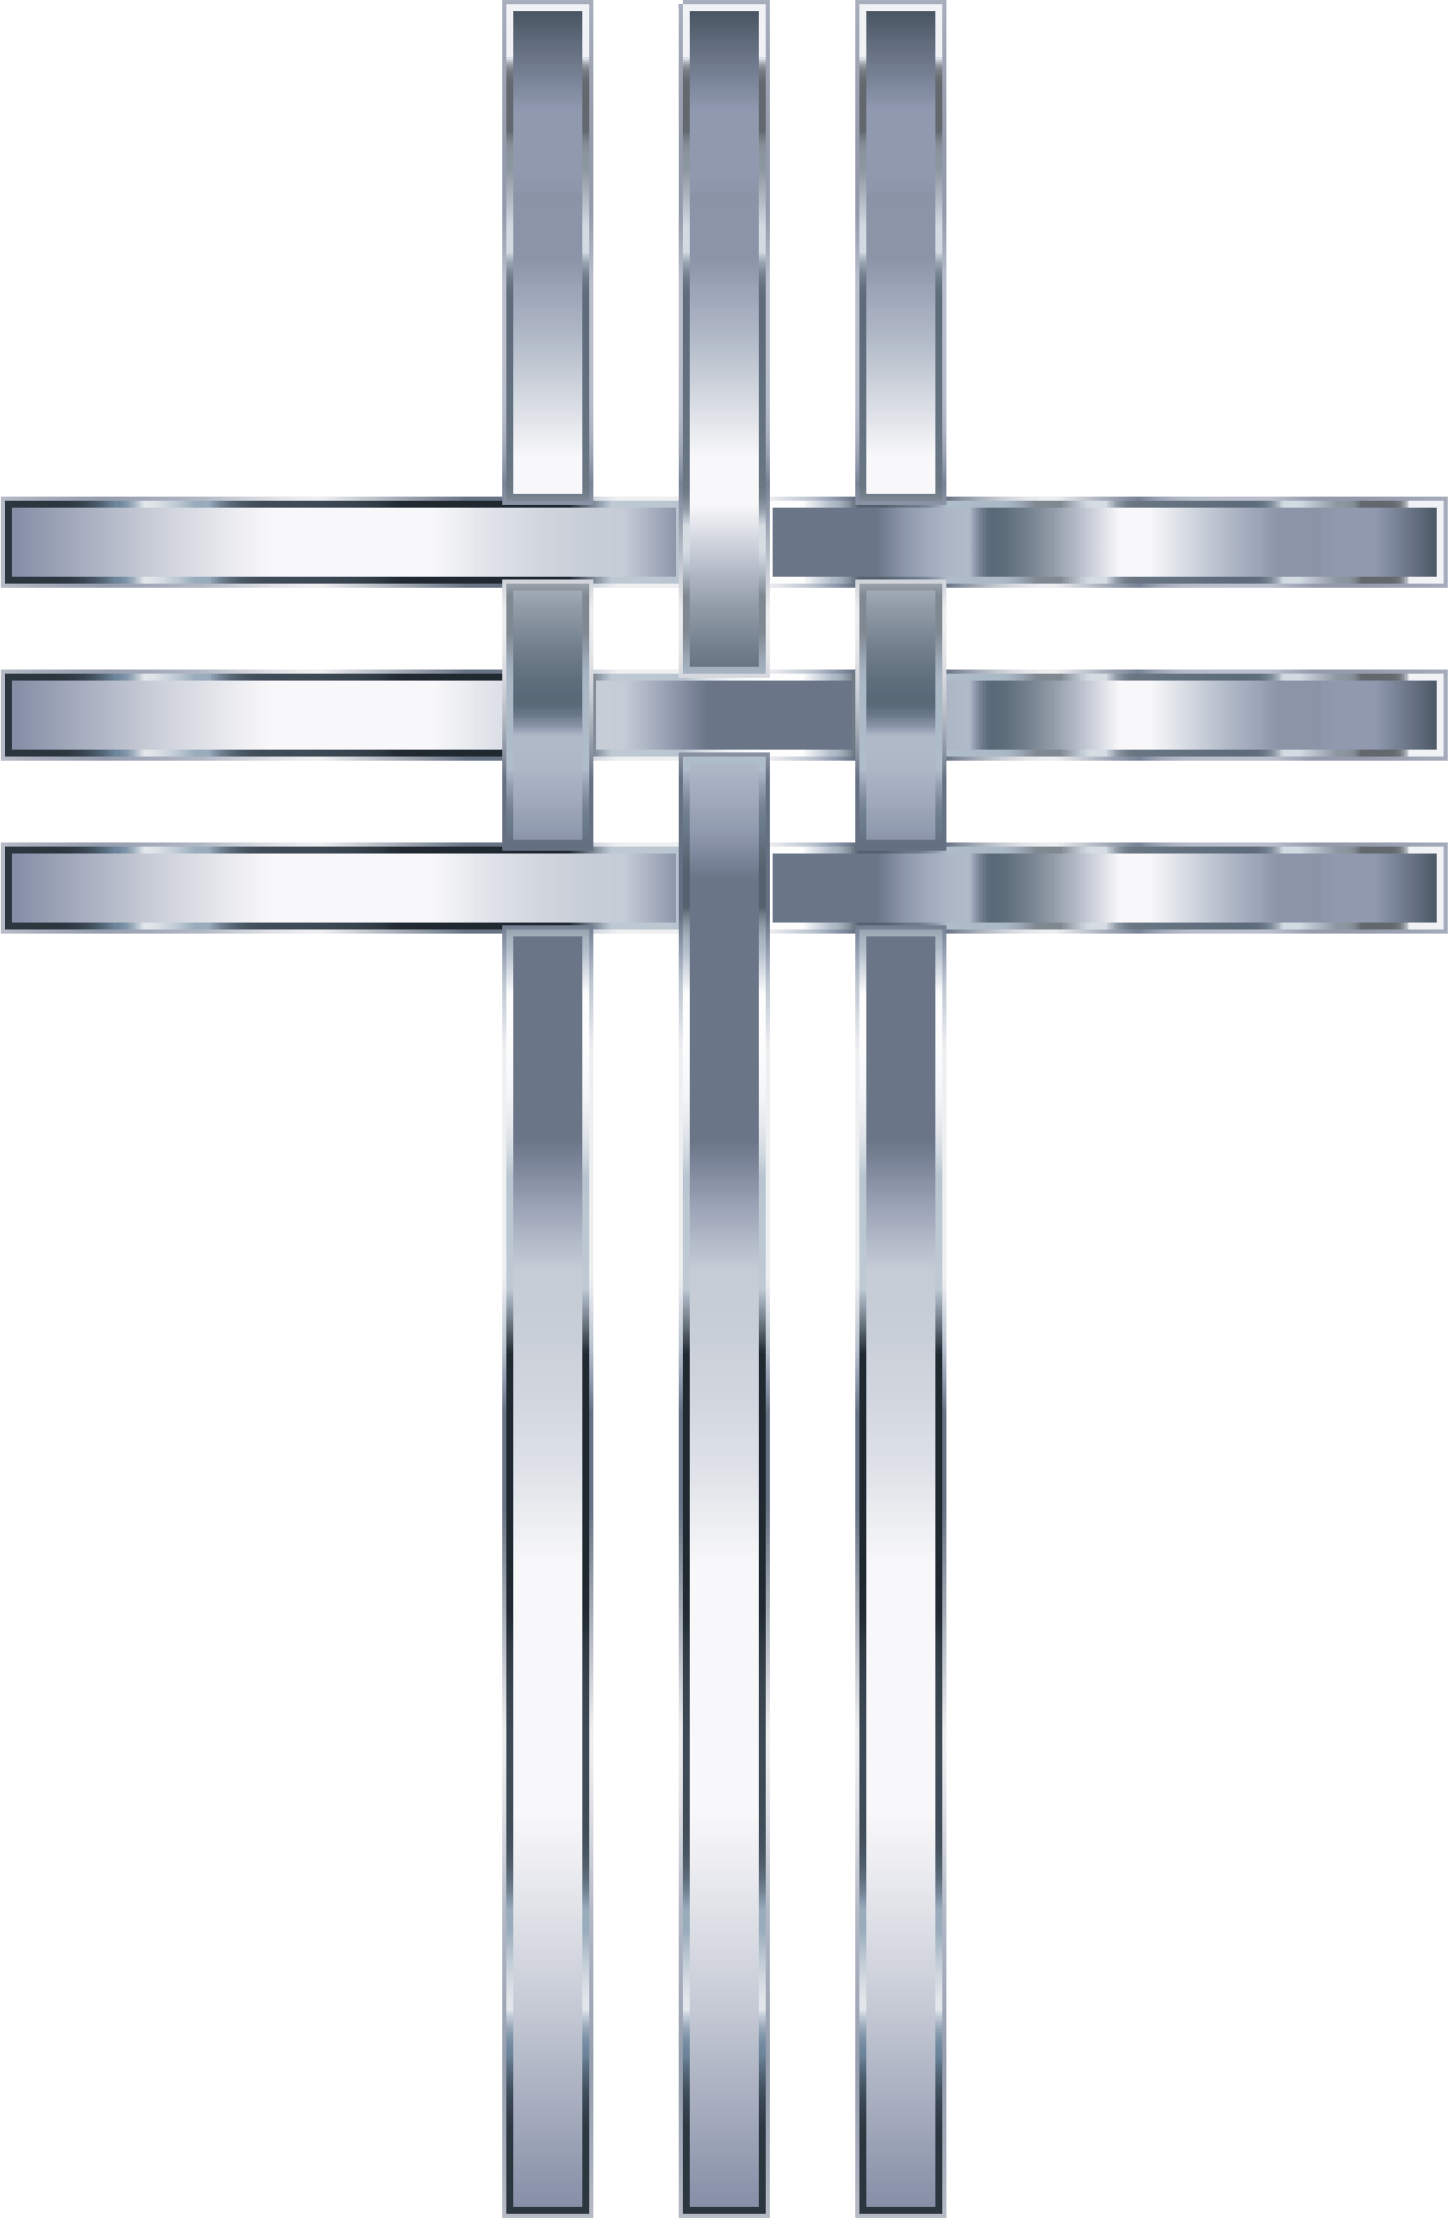 Interlocked Stylized Titanium Cross No Background by GDJ